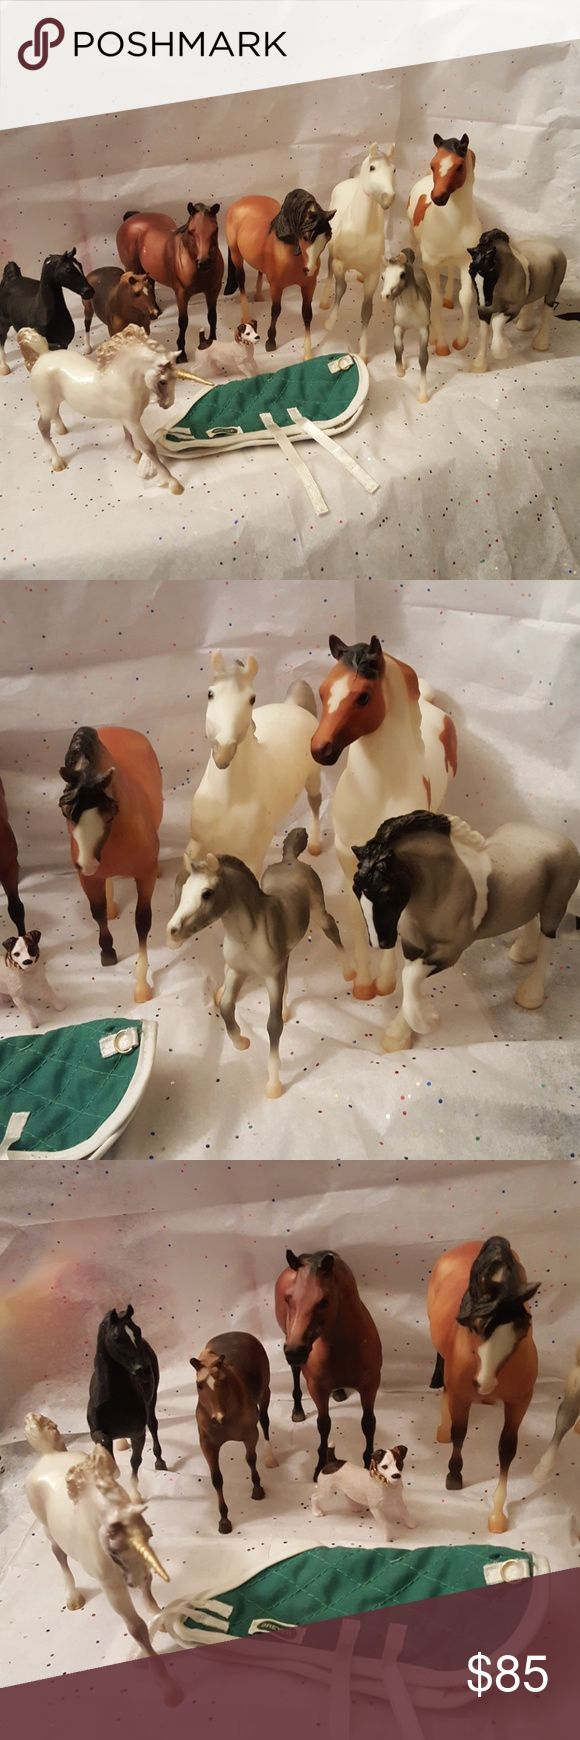 BREYER Horse and Unicorn Bundle VINTAGE BREYER Horse and Unicorn Bundle. This bundle comes with a total of 8 horses, 1 unicorn, 1 dog and a horse cover up blanket. 8 horses include a white/gray mom and foal (pic 5), a gray Clydesdale (I think that's what their called - pic 4), a black show horse (pic 4) and the rest I'm unsure of what type of horse it is. Unicorn is in pic 7. Pic 8 is just to show proof that they are the Breyer brand. All of these were bought 10+ years ago!! Really only…